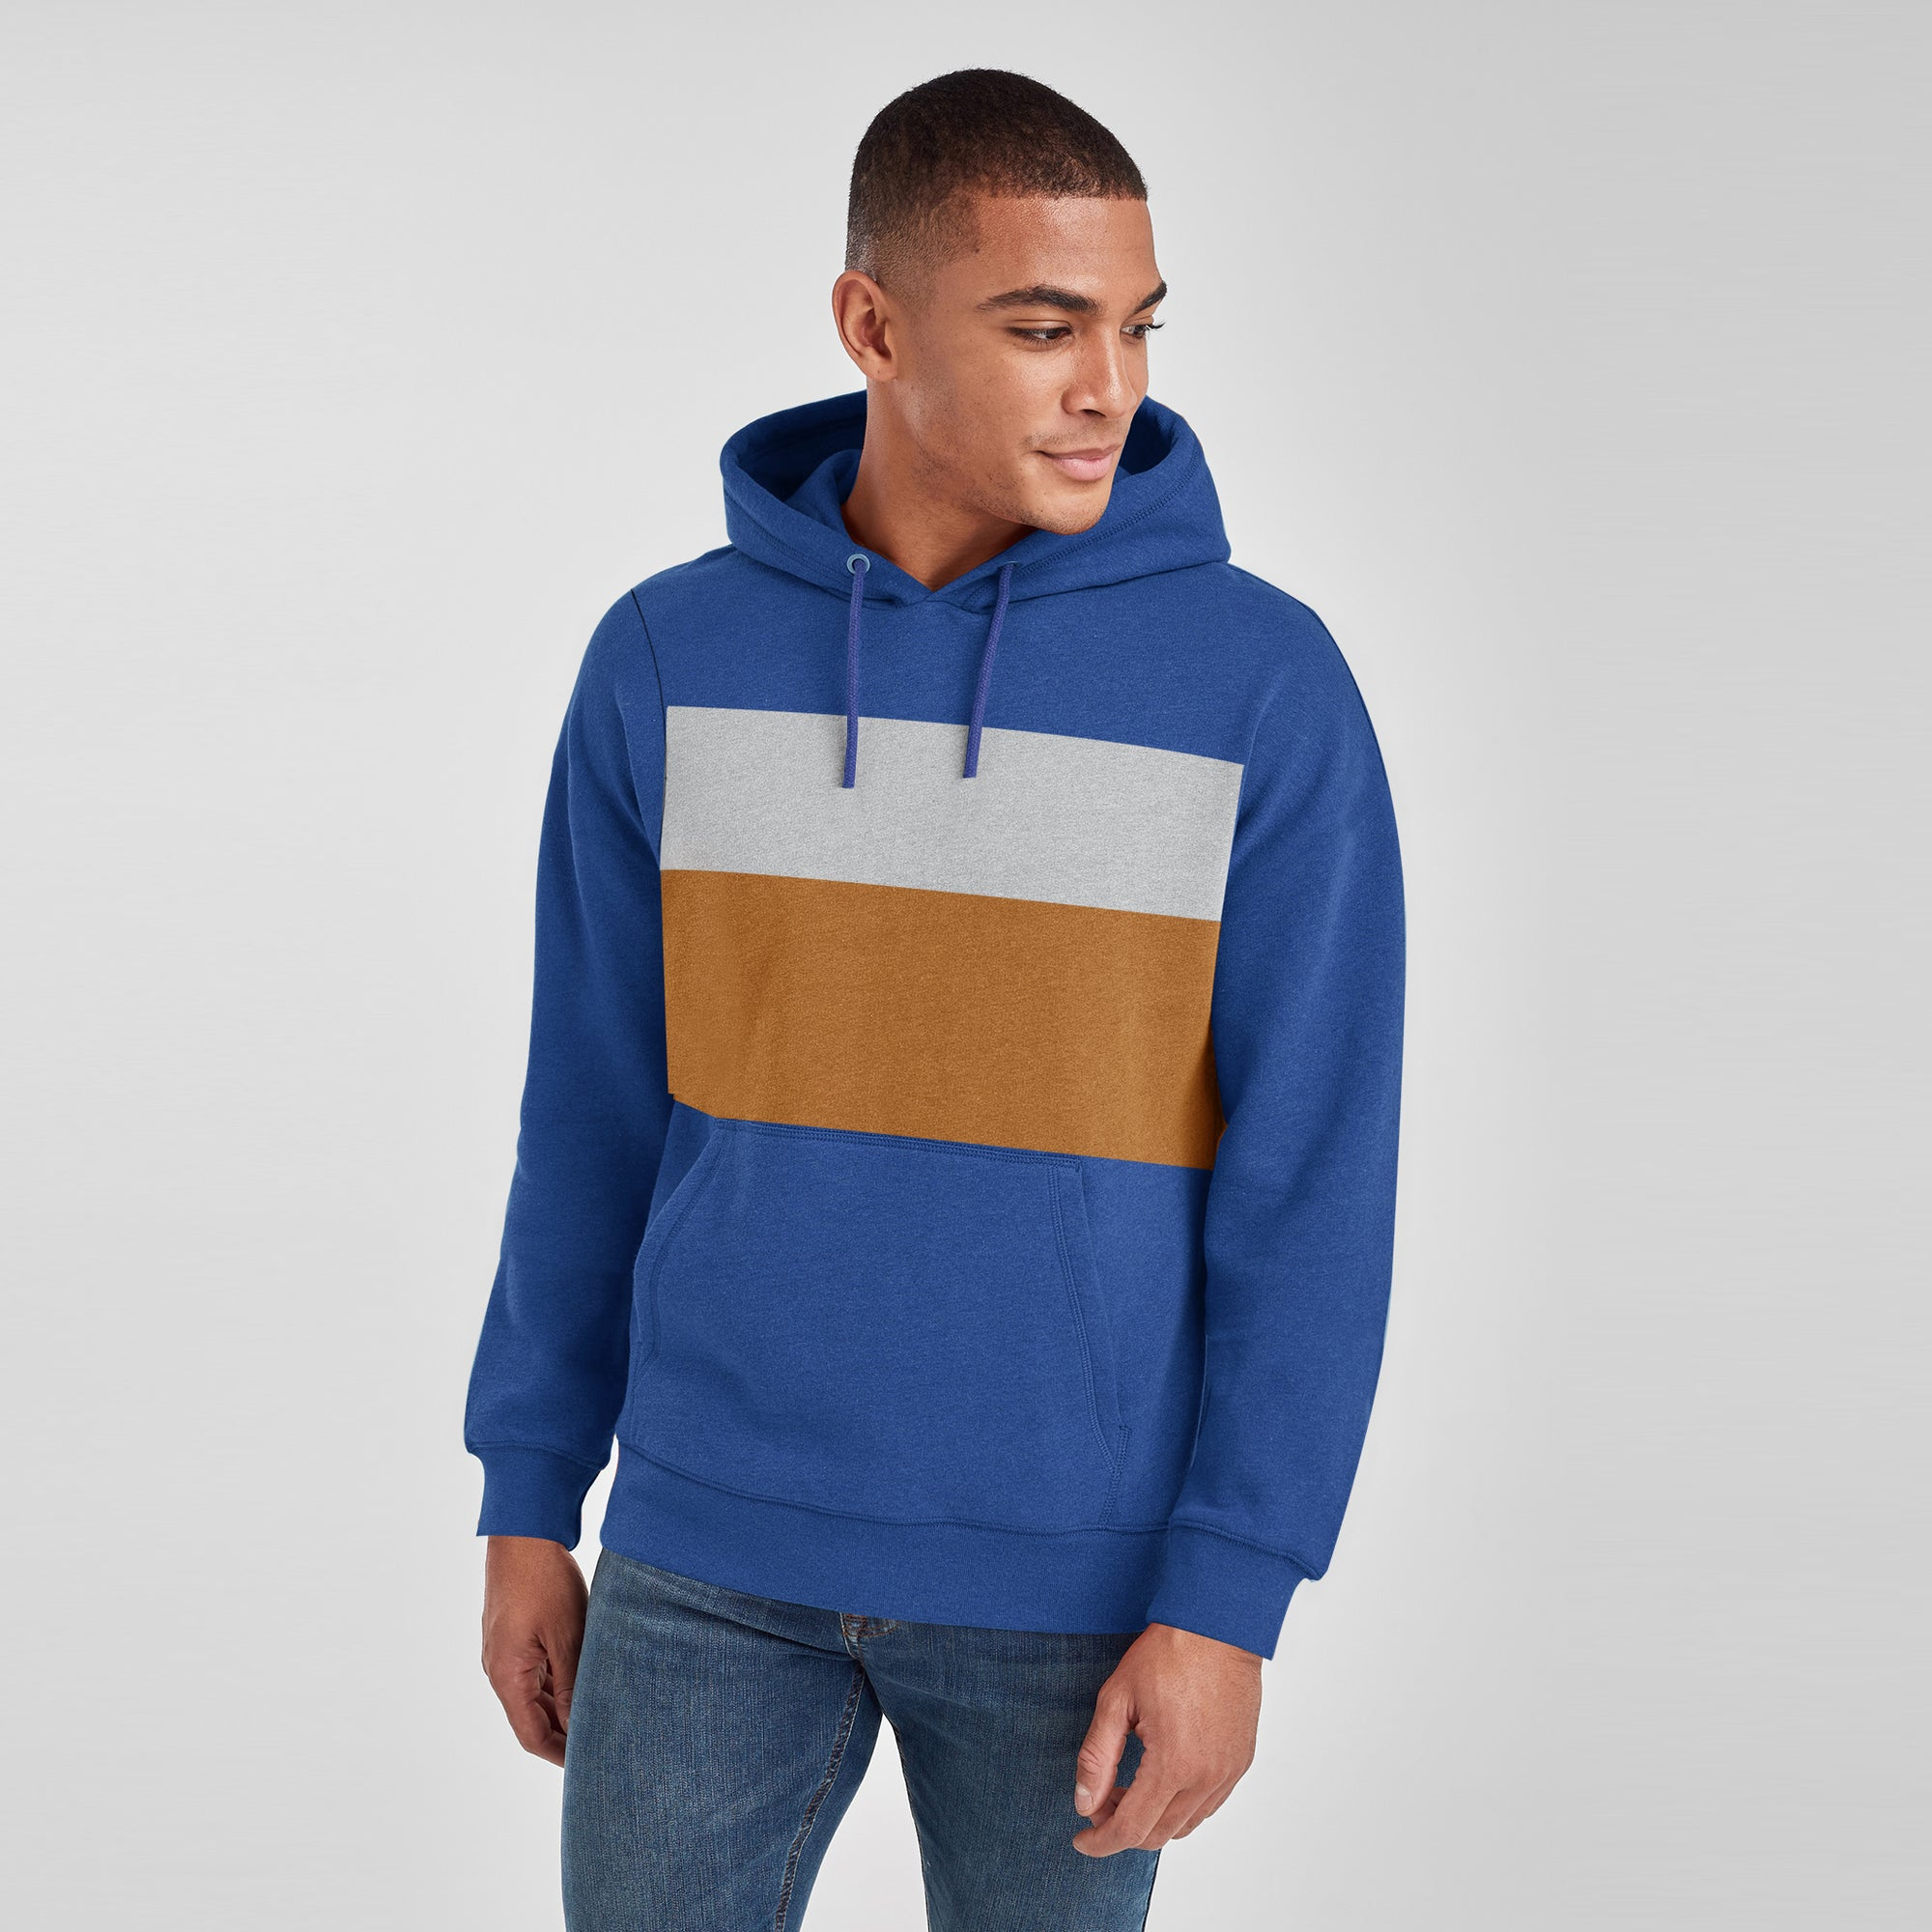 New Stylish Terry Fleece Pullover Hoodie For Men Navy With Grey Melange & Camel Panels SP1755